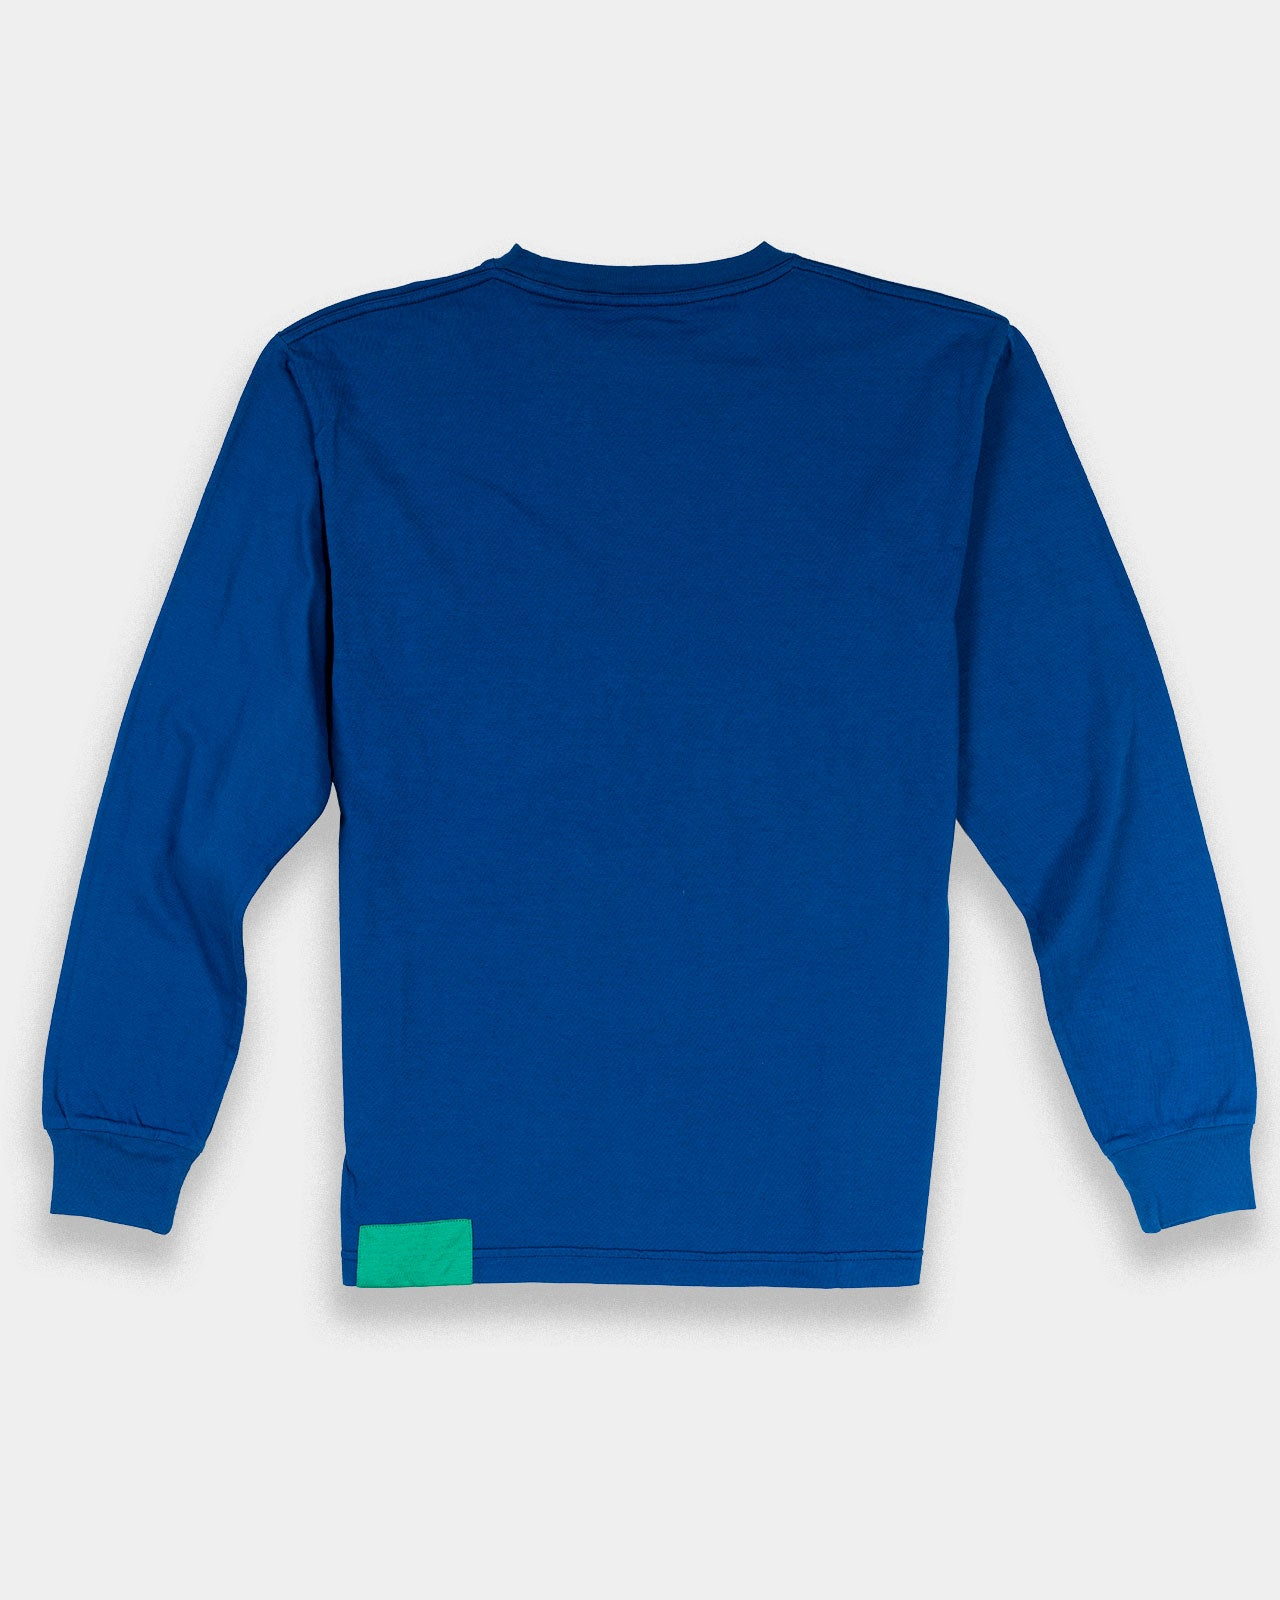 LIMOGES BLUE LONG SLEEVE T-SHIRT